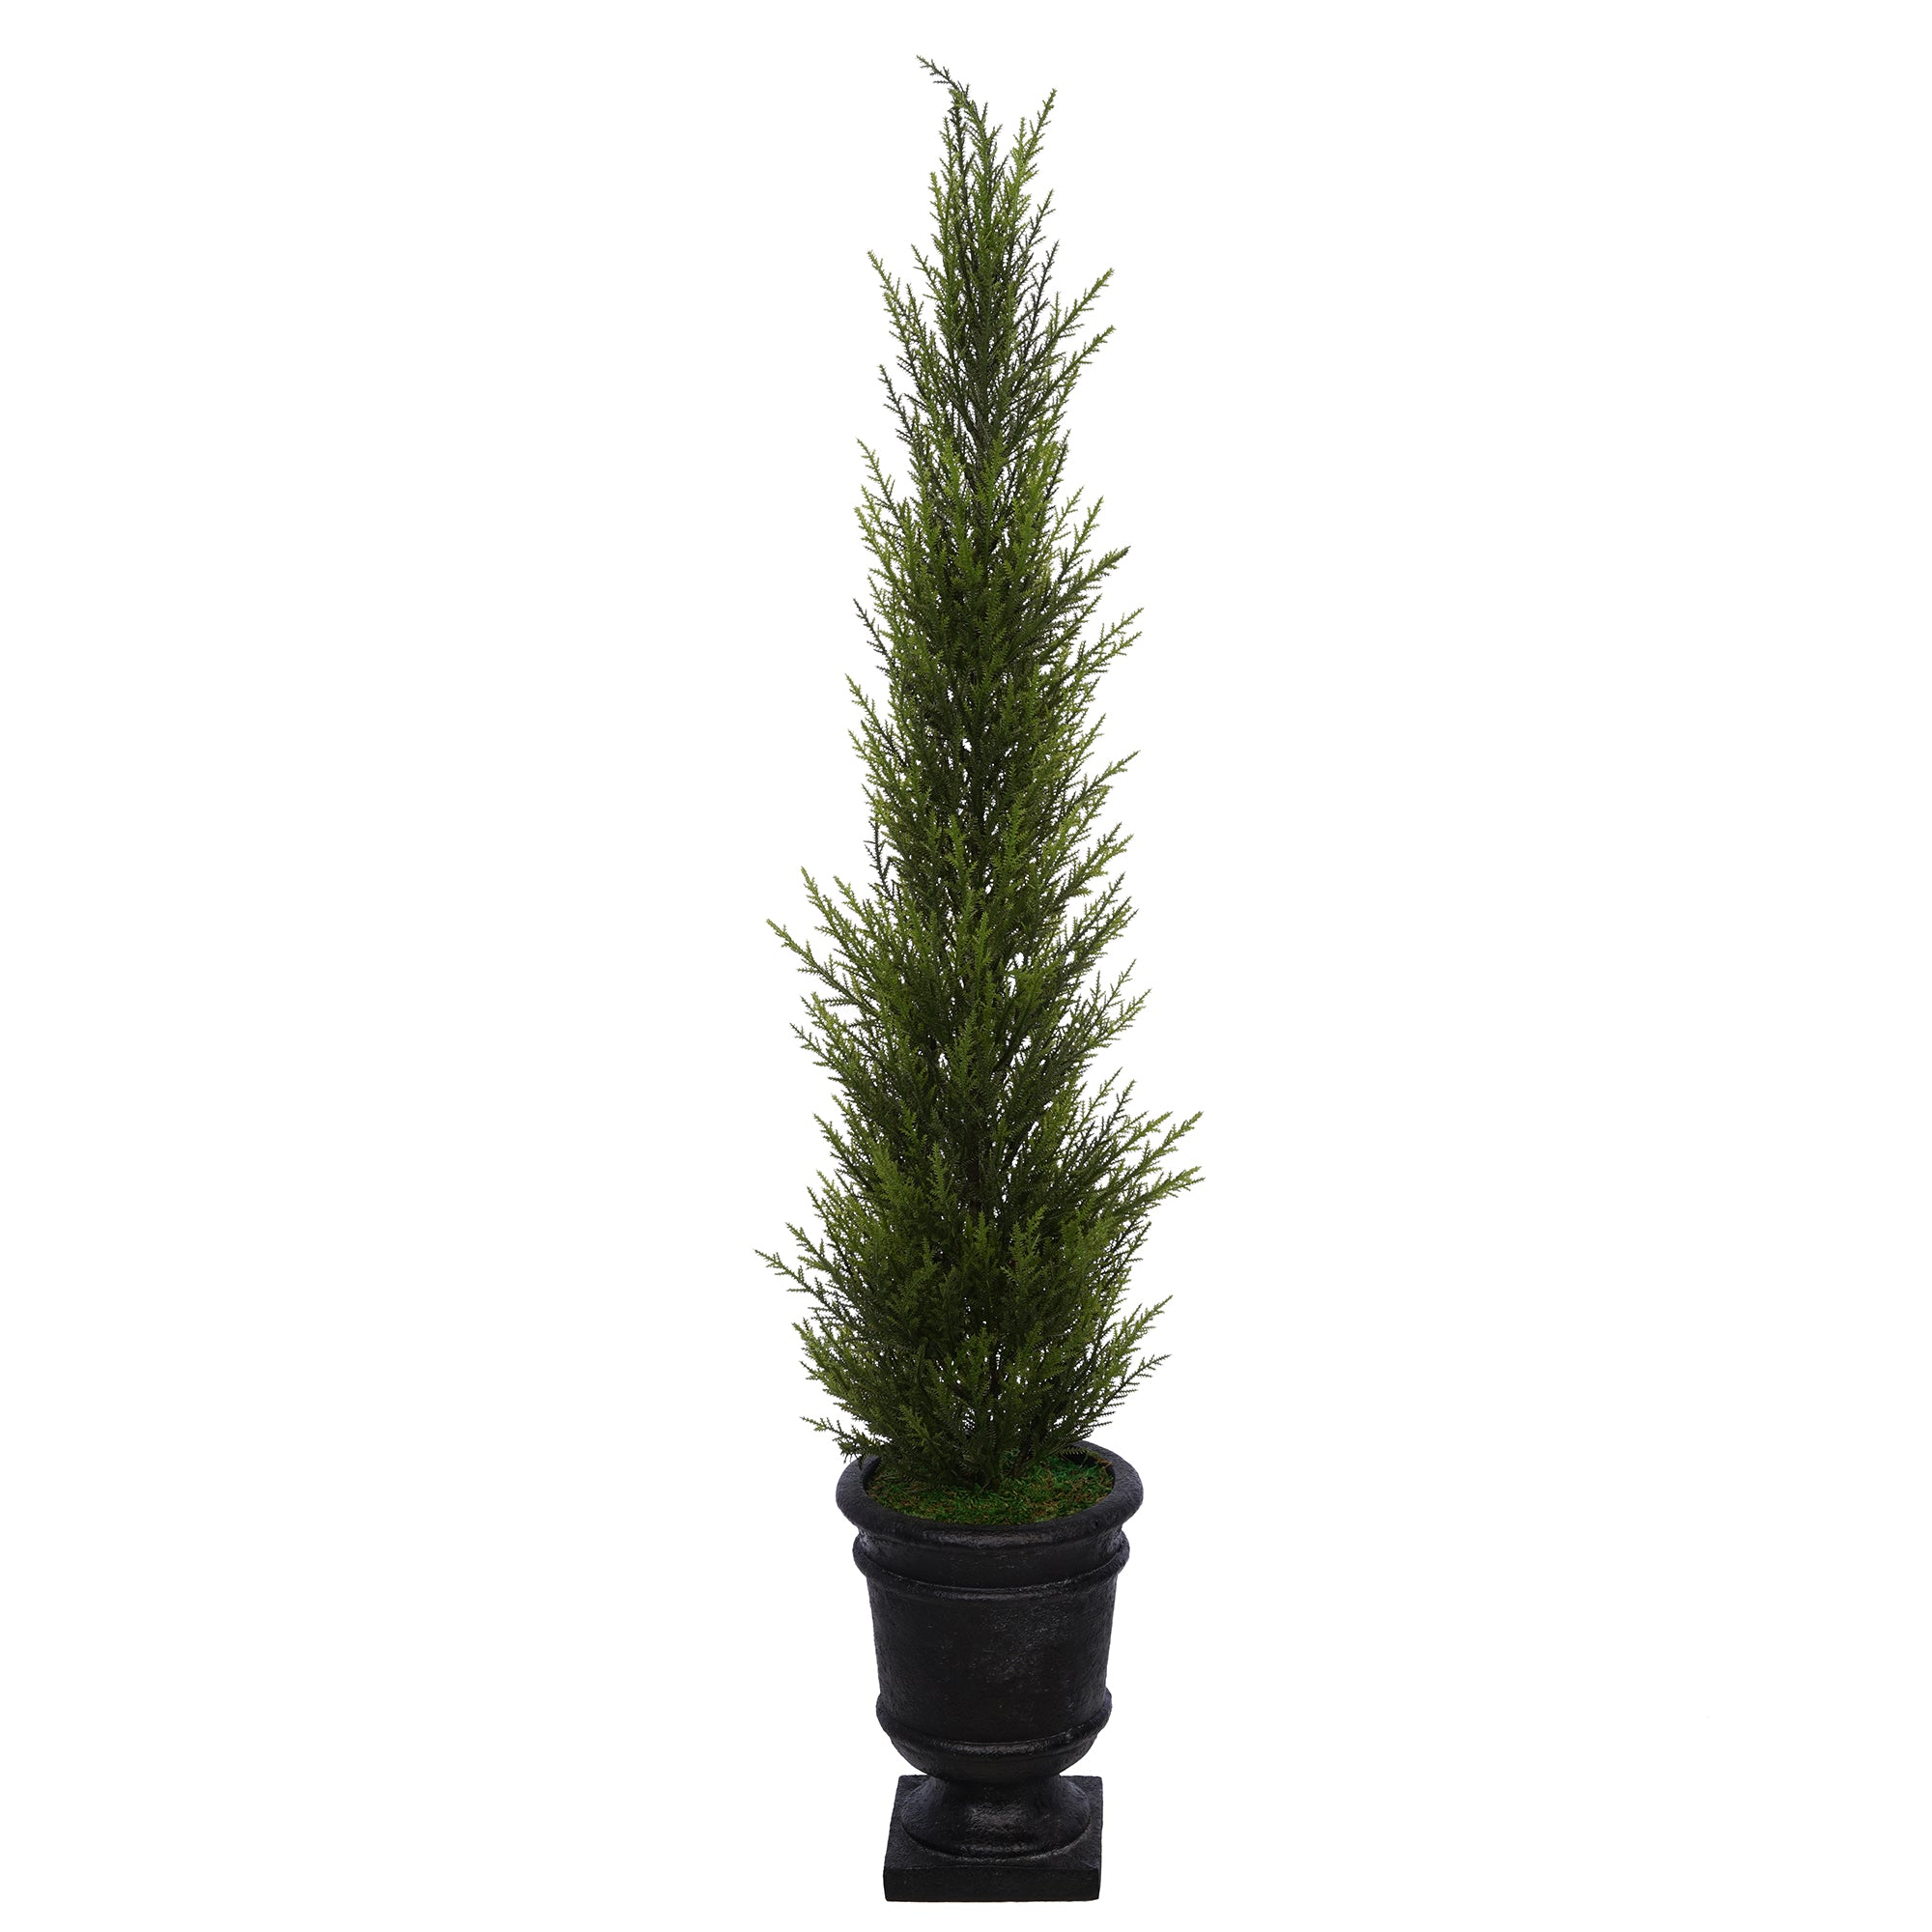 Artificial 37-Inch Cedar Pencil Topiary in Black Urn